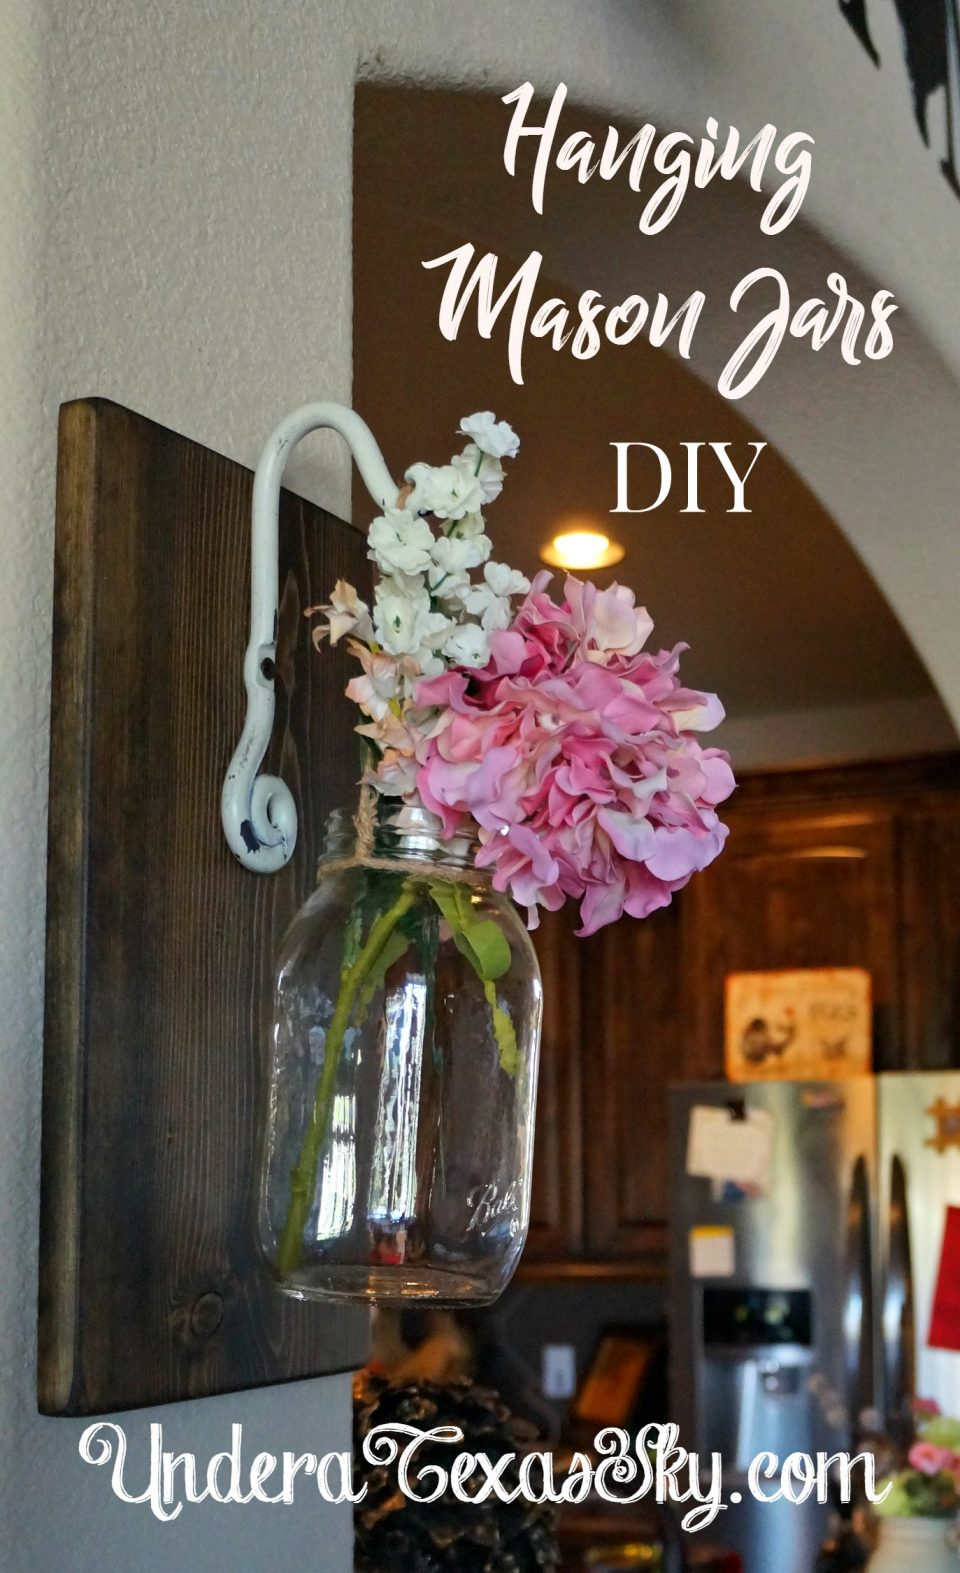 Hanging Mason Jar Wall Art